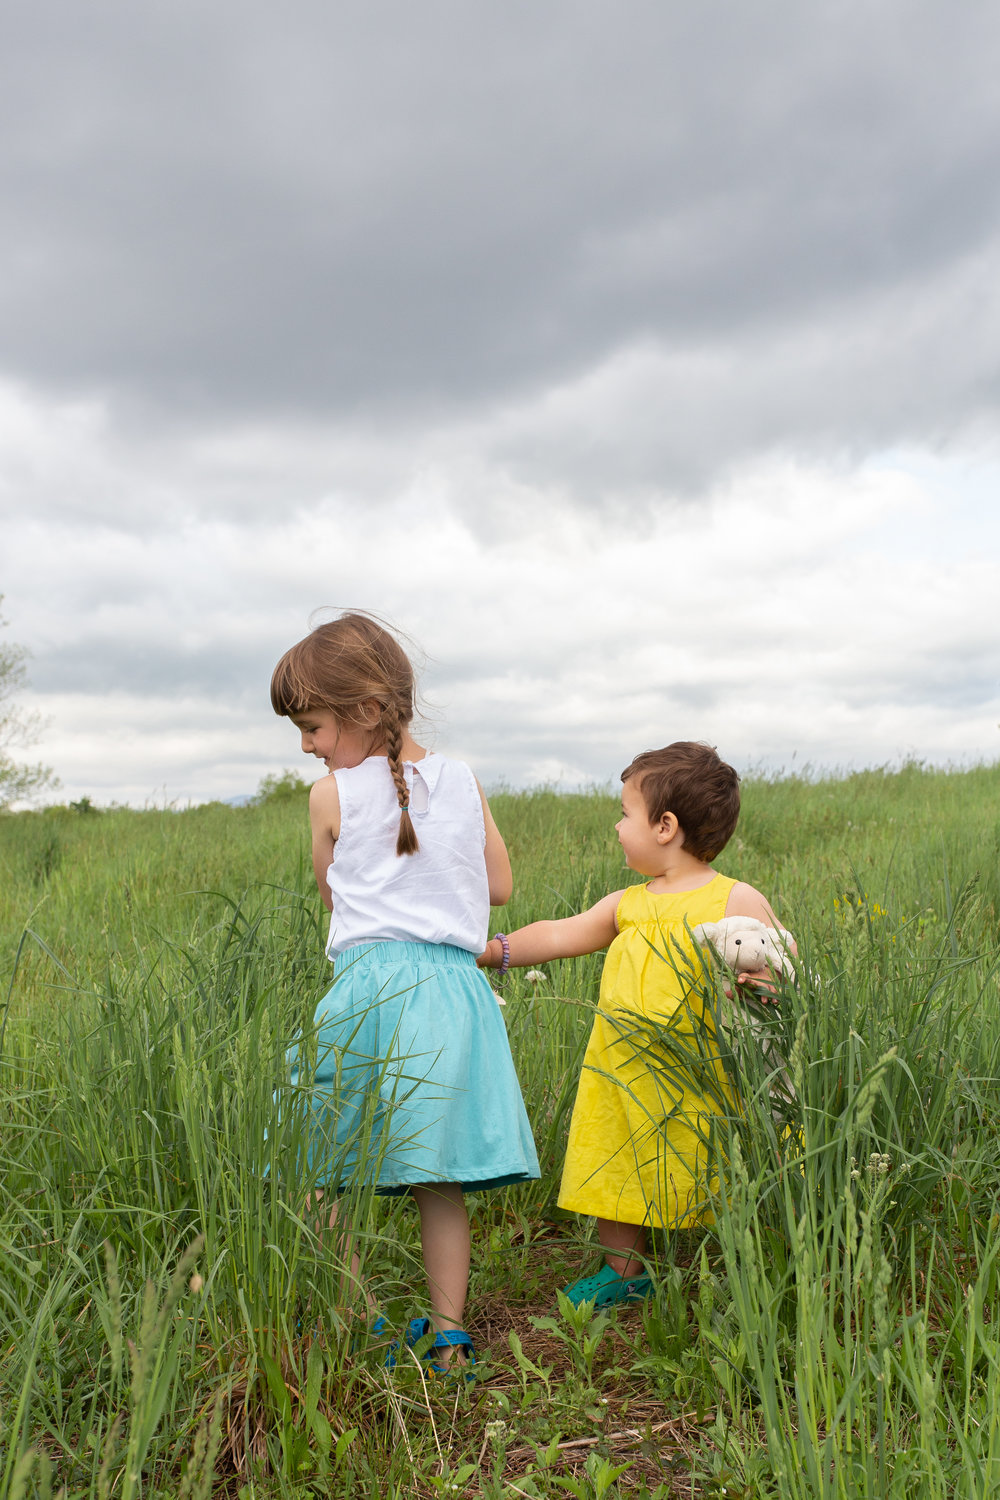 Sisters in a field in Germantown, NY.Photograph by Laughing Heart Photography.